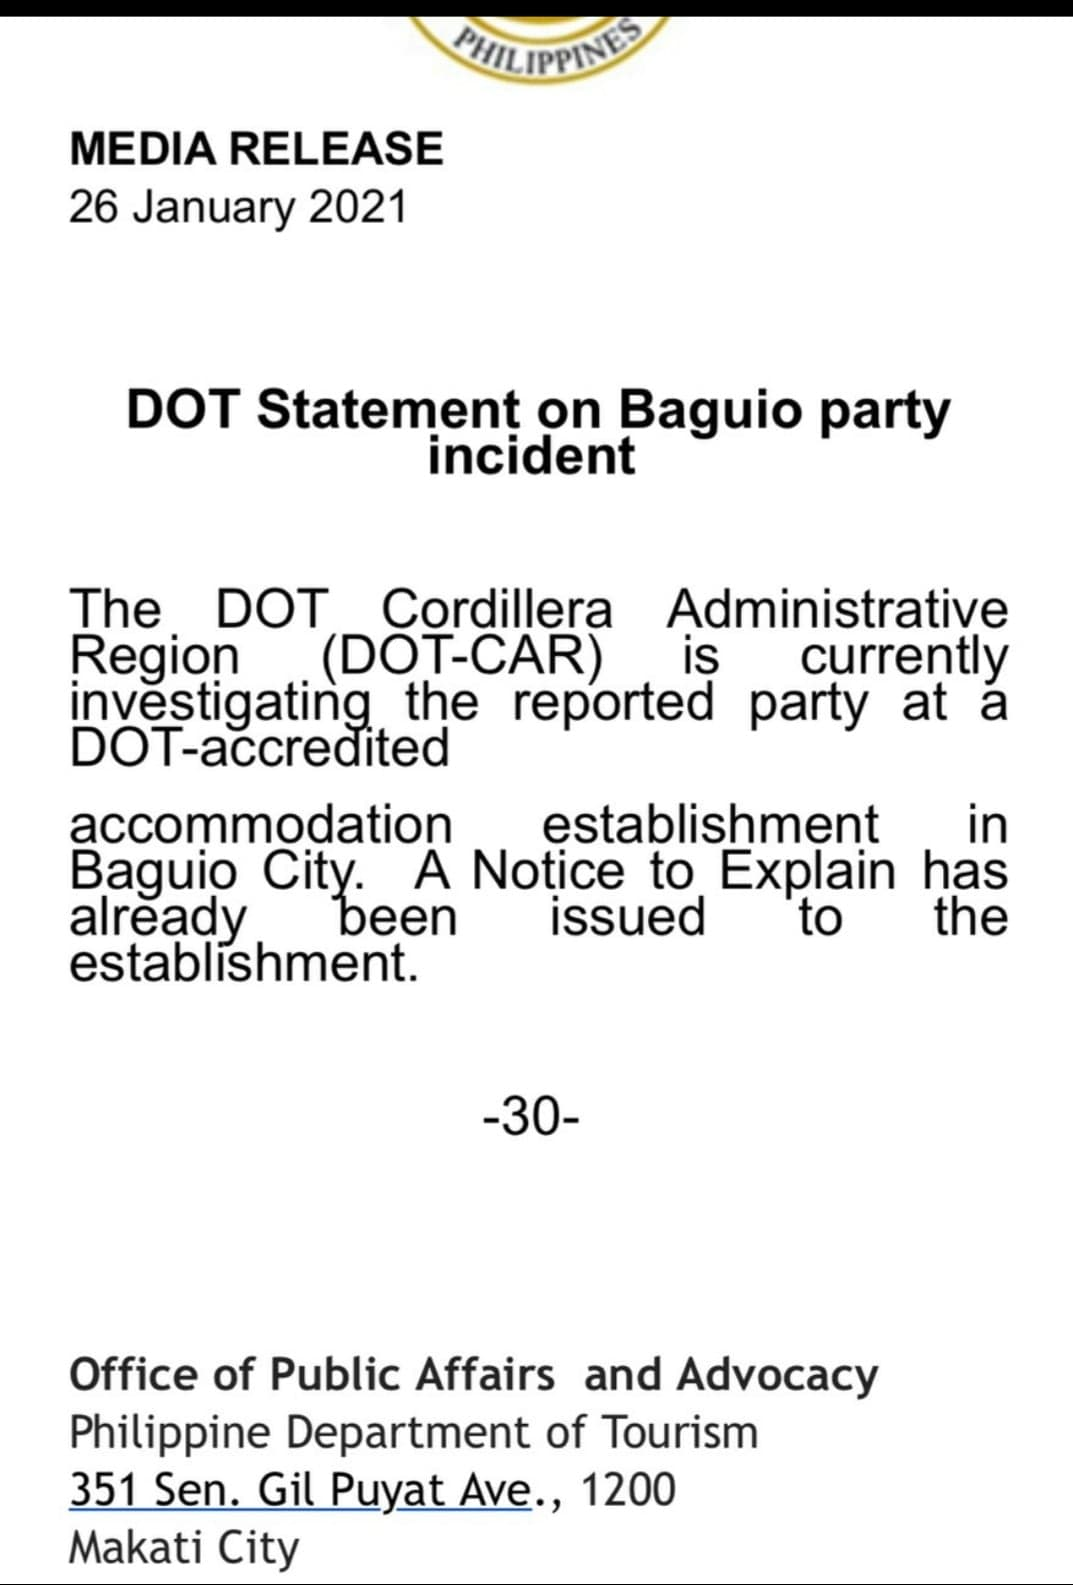 DOT statement on Tim Yap's Baguio Party incident